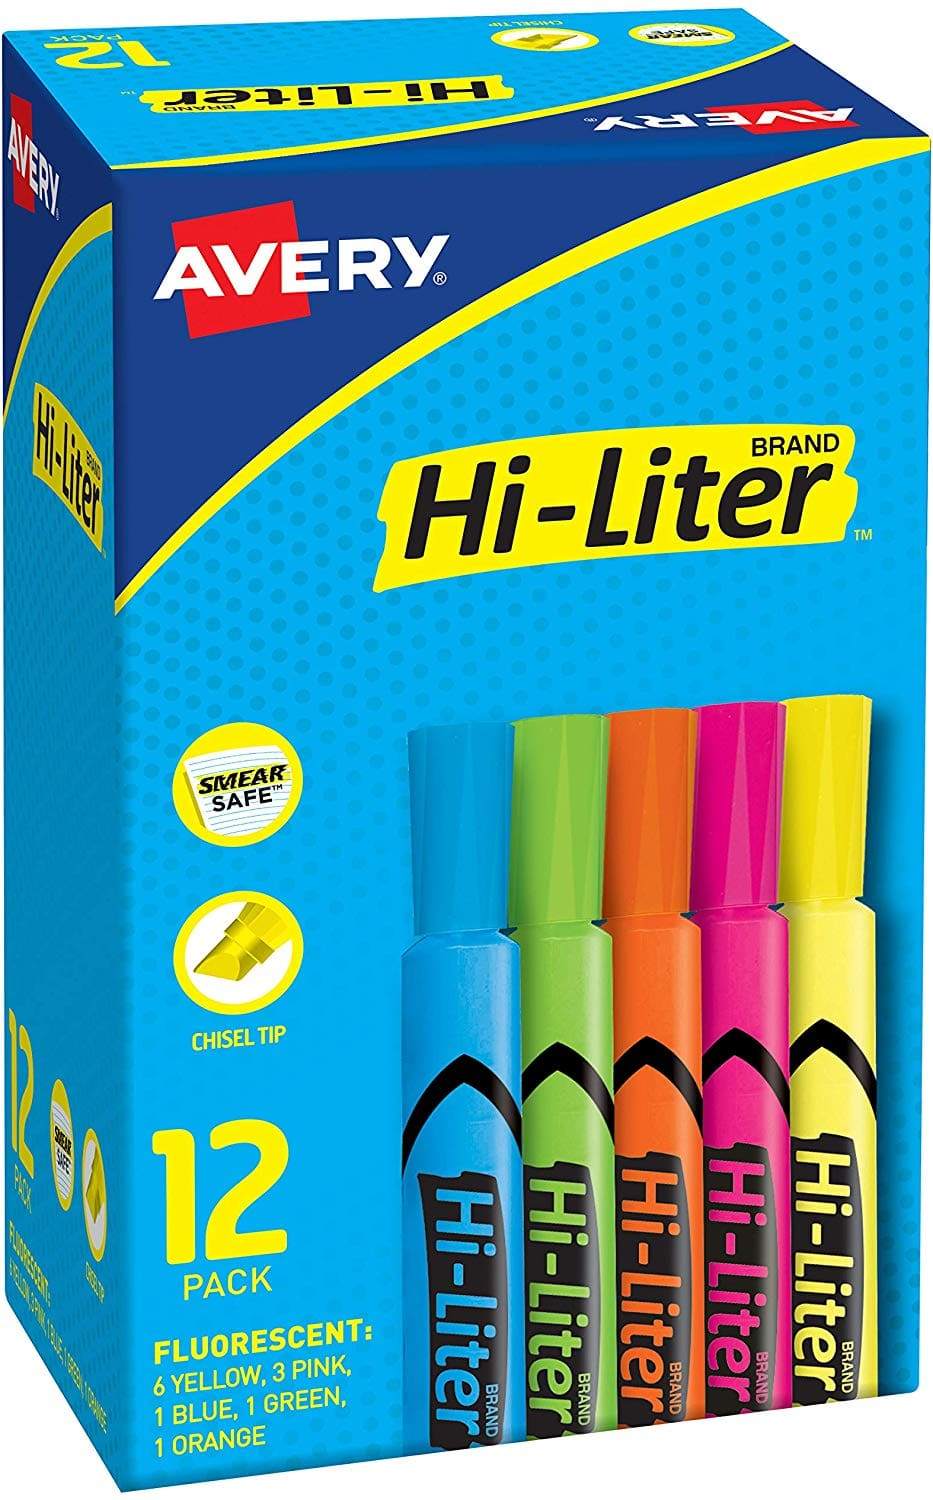 Avery Hi-Liter 12 Pack Assorted Colors $2.93 or 24 Pack for $5.03 Amazon Free Prime Ship or on $25+